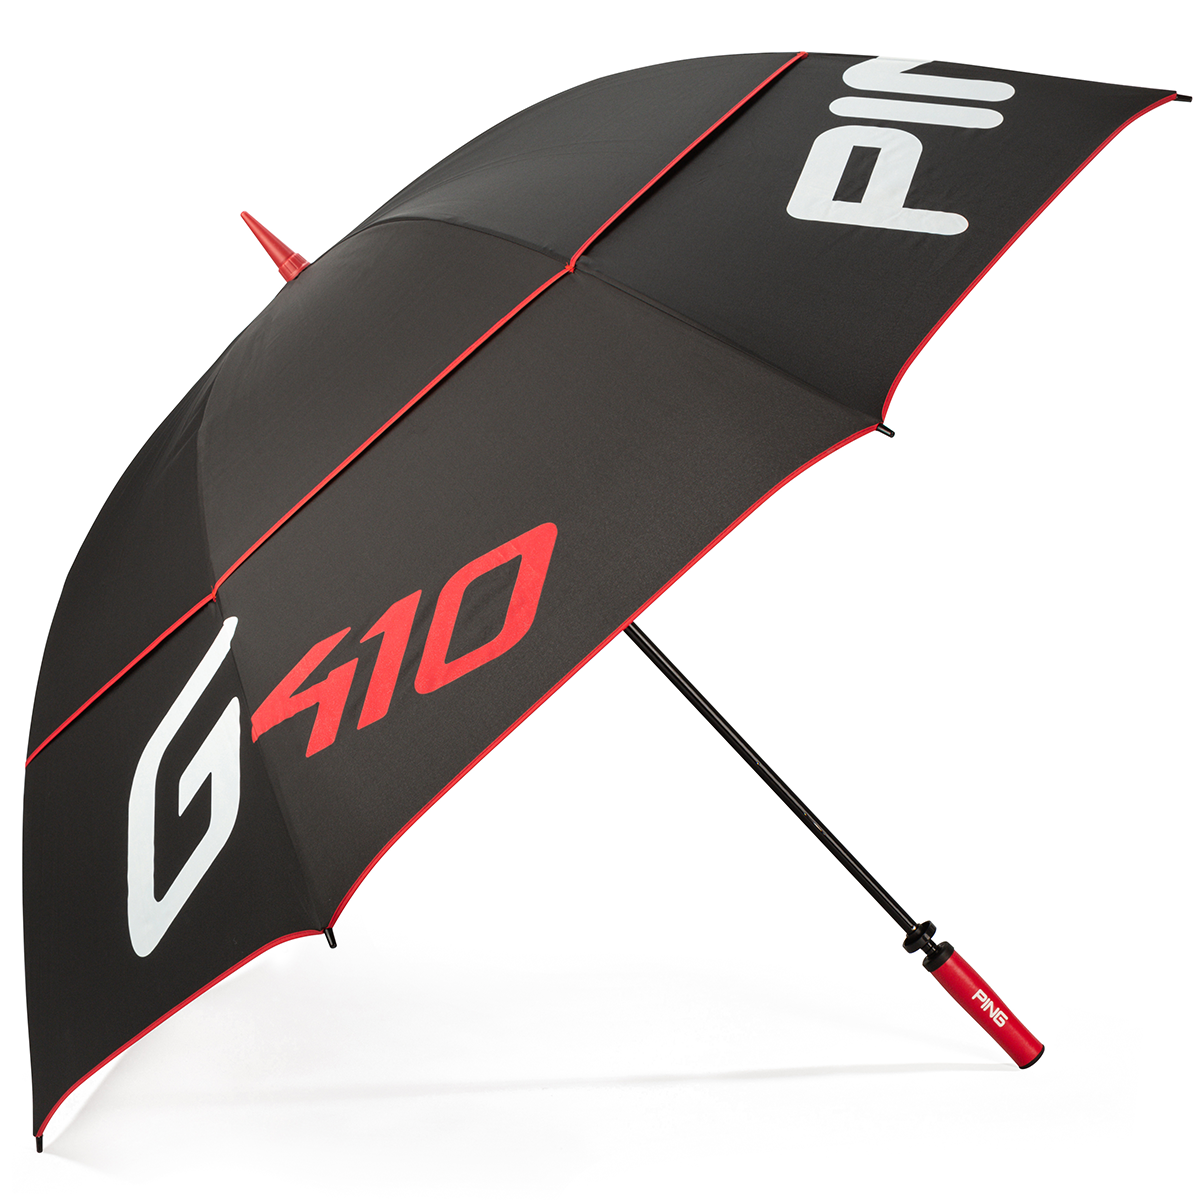 Ping G410 Double Canopy 68 Quot Tour Umbrella Online Golf